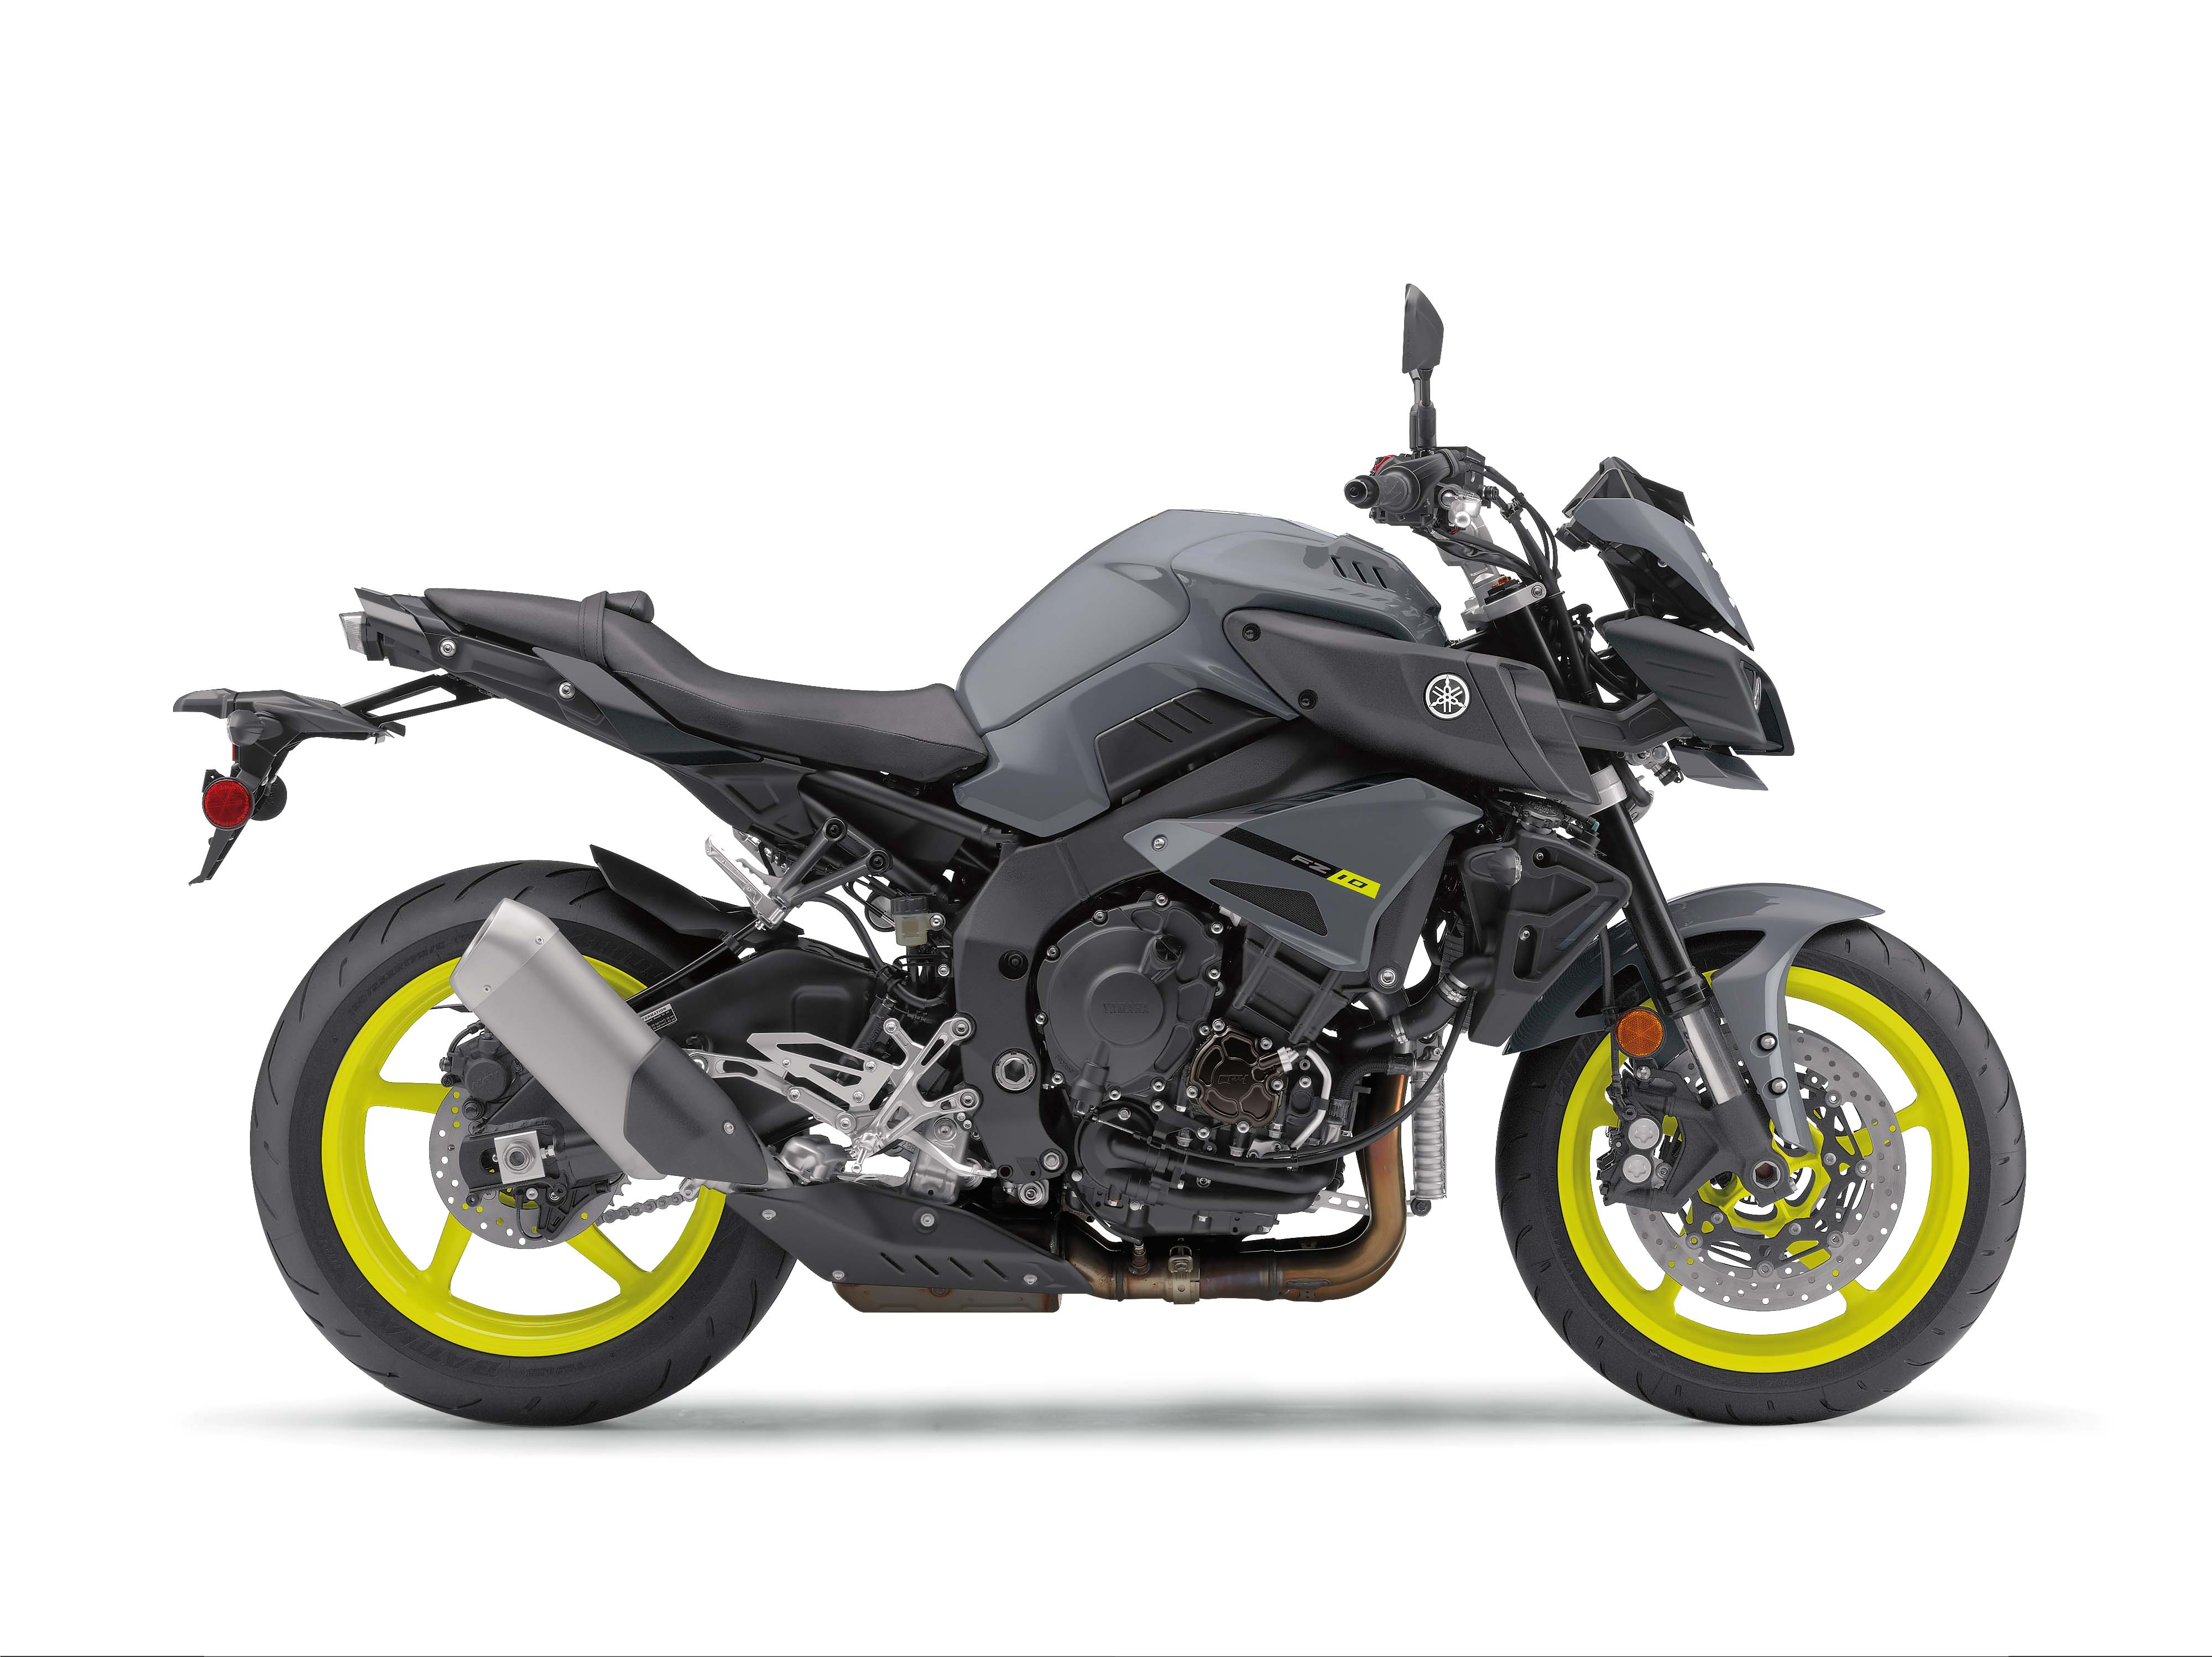 2017 yamaha fz 10 officially coming to the usa in june. Black Bedroom Furniture Sets. Home Design Ideas